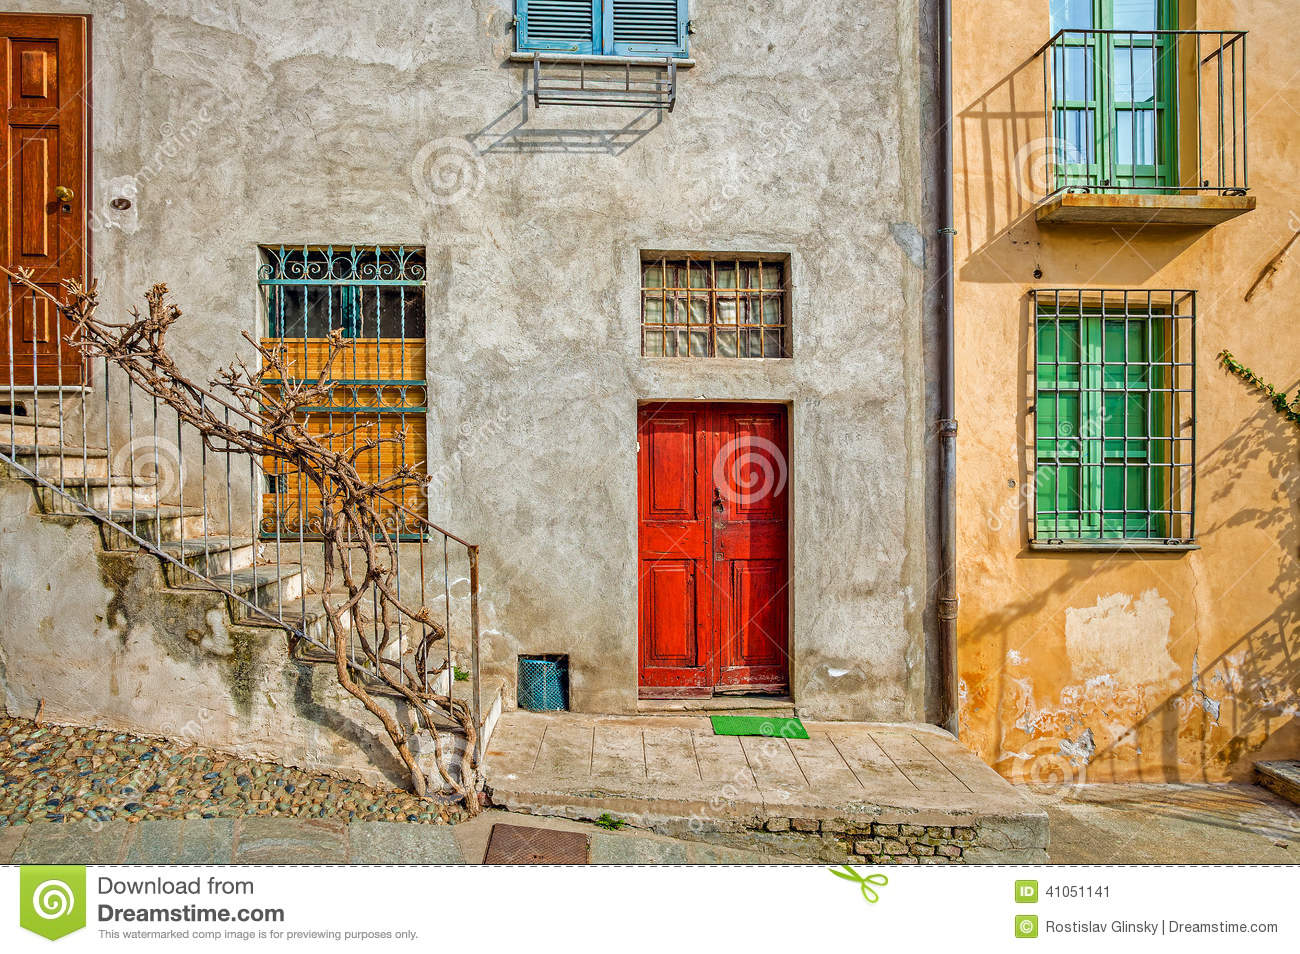 Fa ade de maison italienne typique photo stock image for Maison italienne architecture